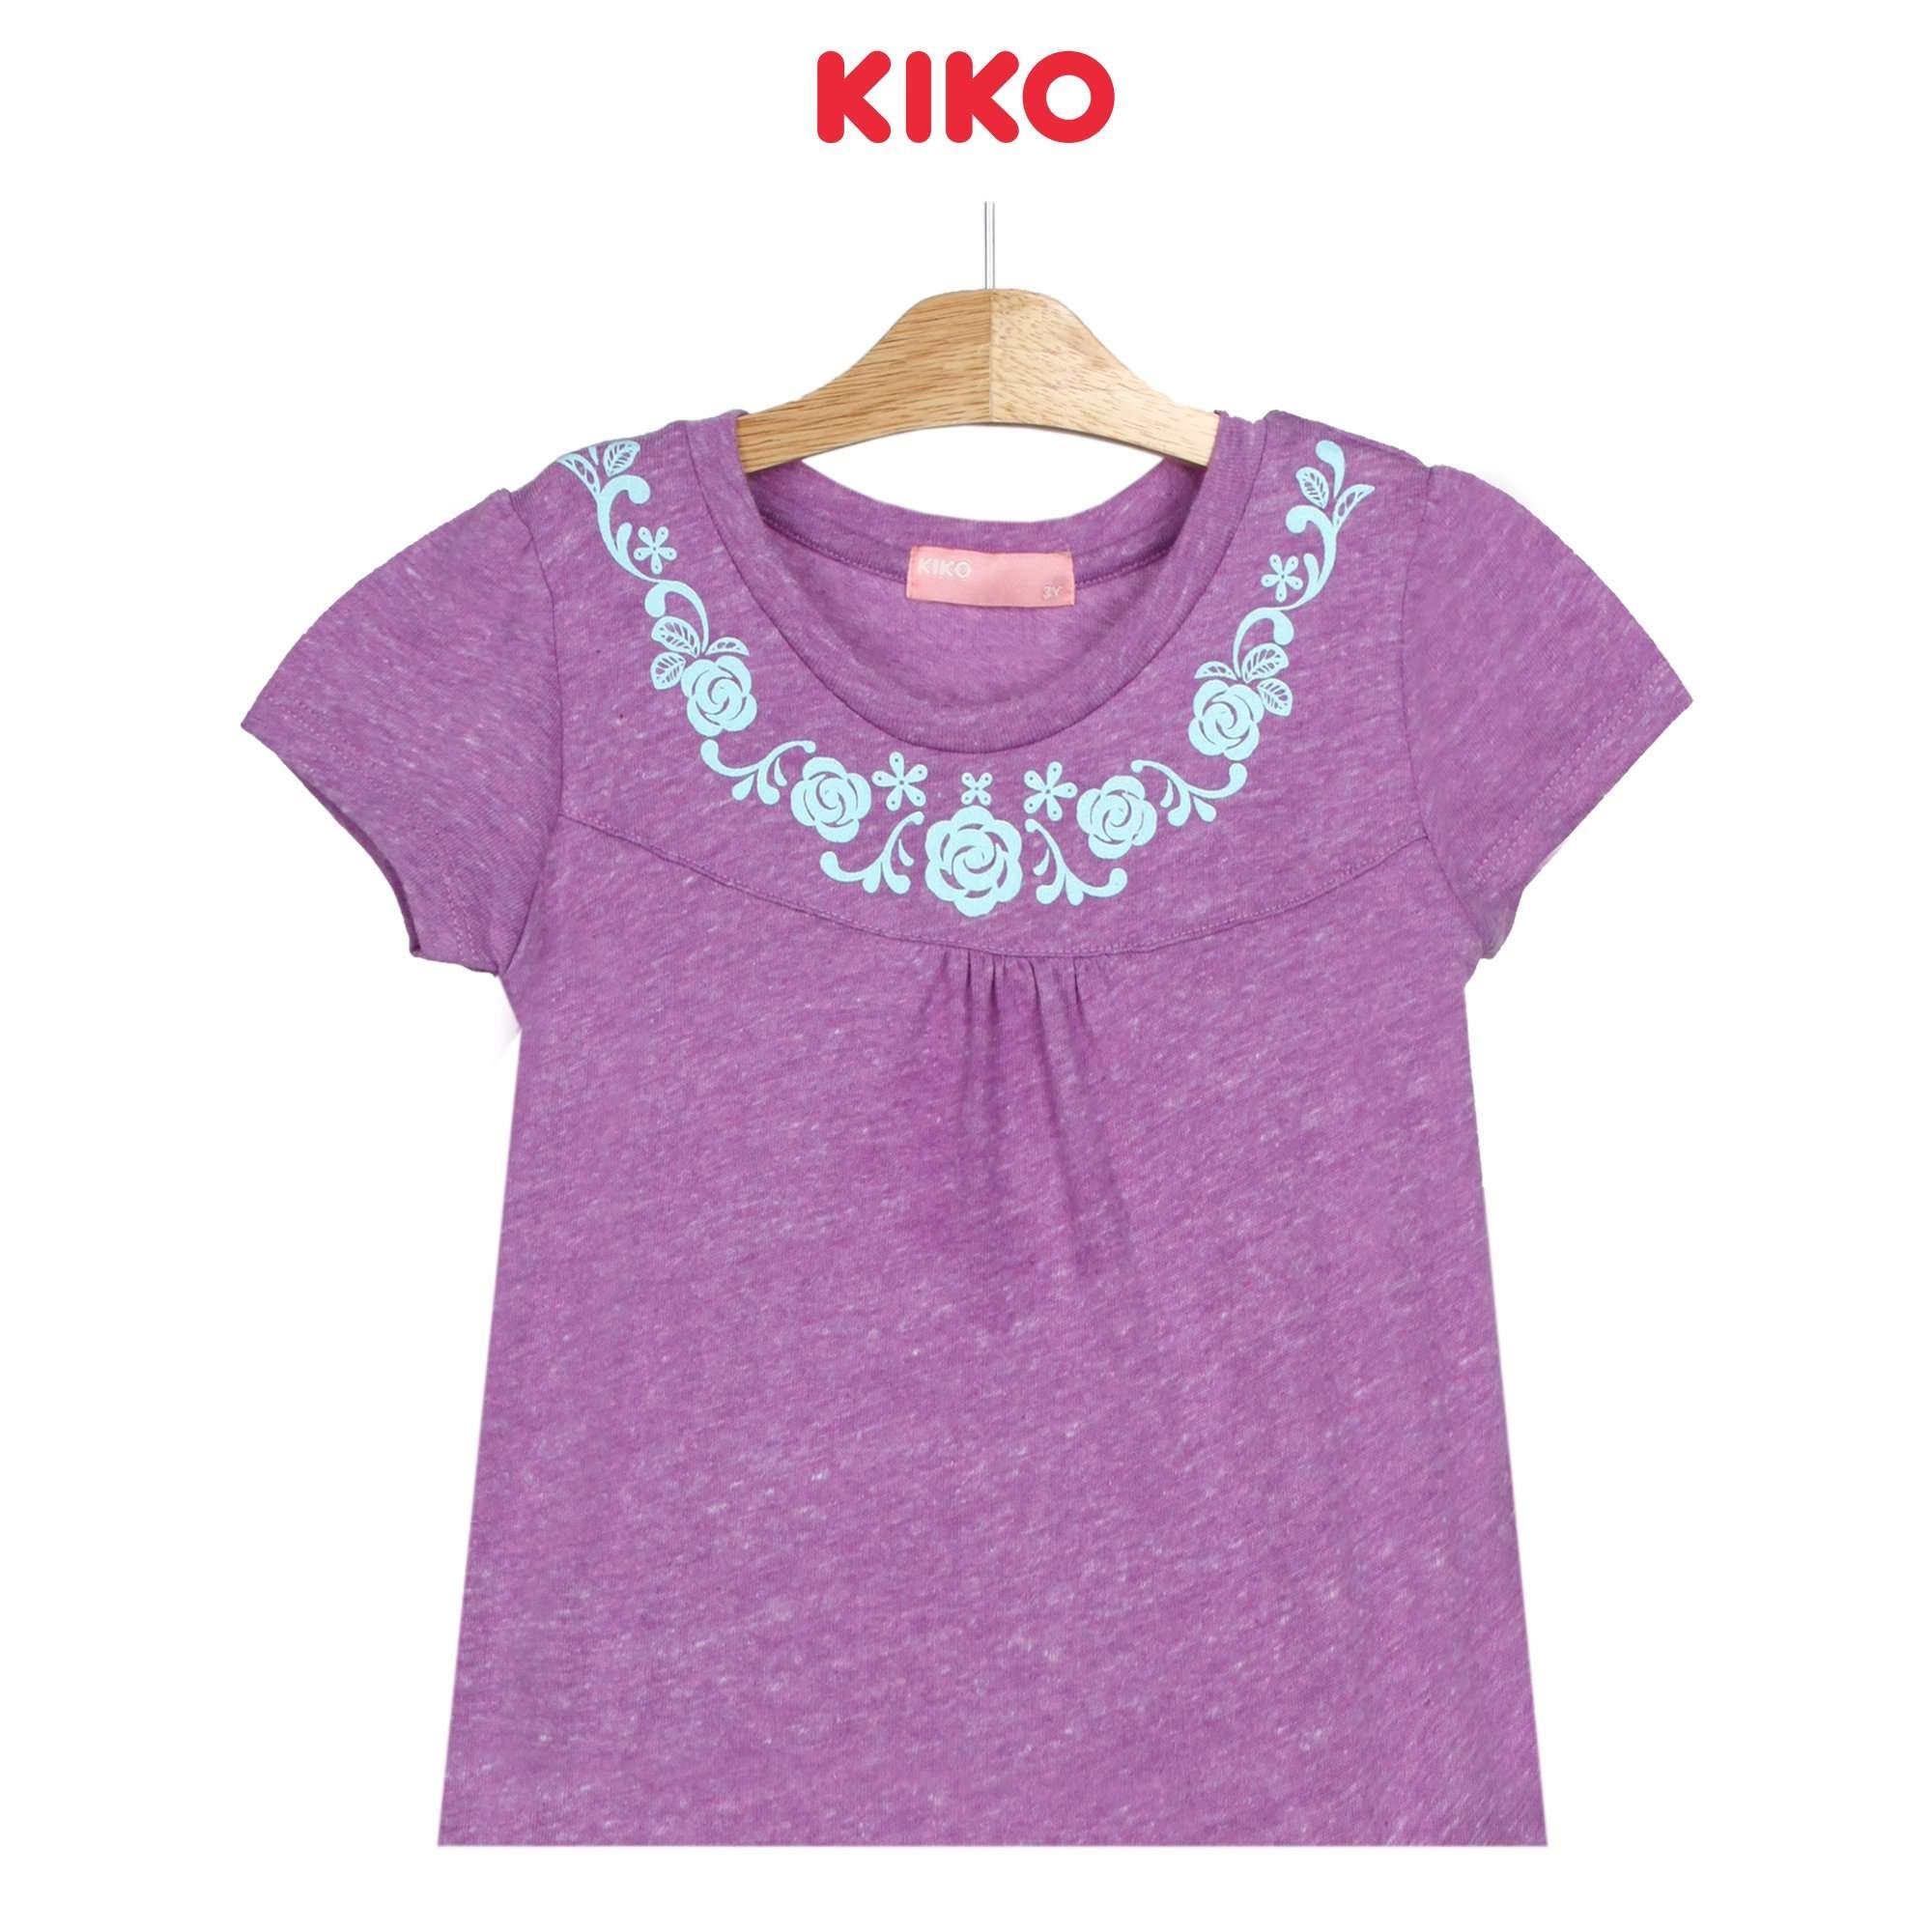 KIKO Girl Short Sleeve Tee - Purple 126069-111 : Buy KIKO online at CMG.MY